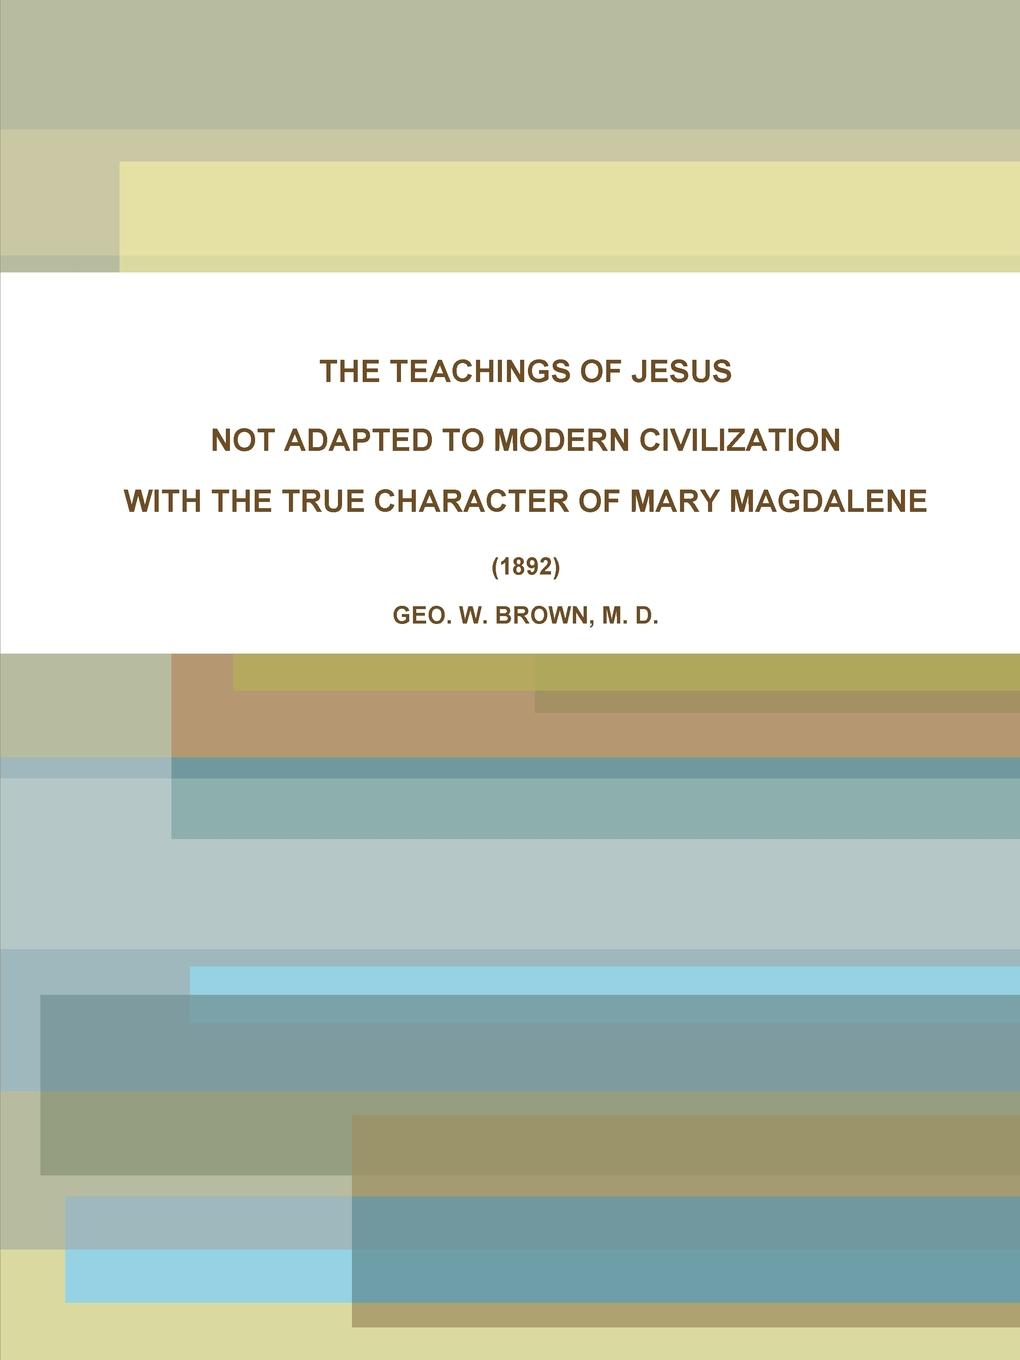 M. D. GEO. W. BROWN THE TEACHINGS OF JESUS, NOT ADAPTED TO MODERN CIVILIZATION. WITH THE TRUE CHARACTER OF MARY MAGDALENE. (1892) the gnostic gospels of philip mary magdalene and thomas